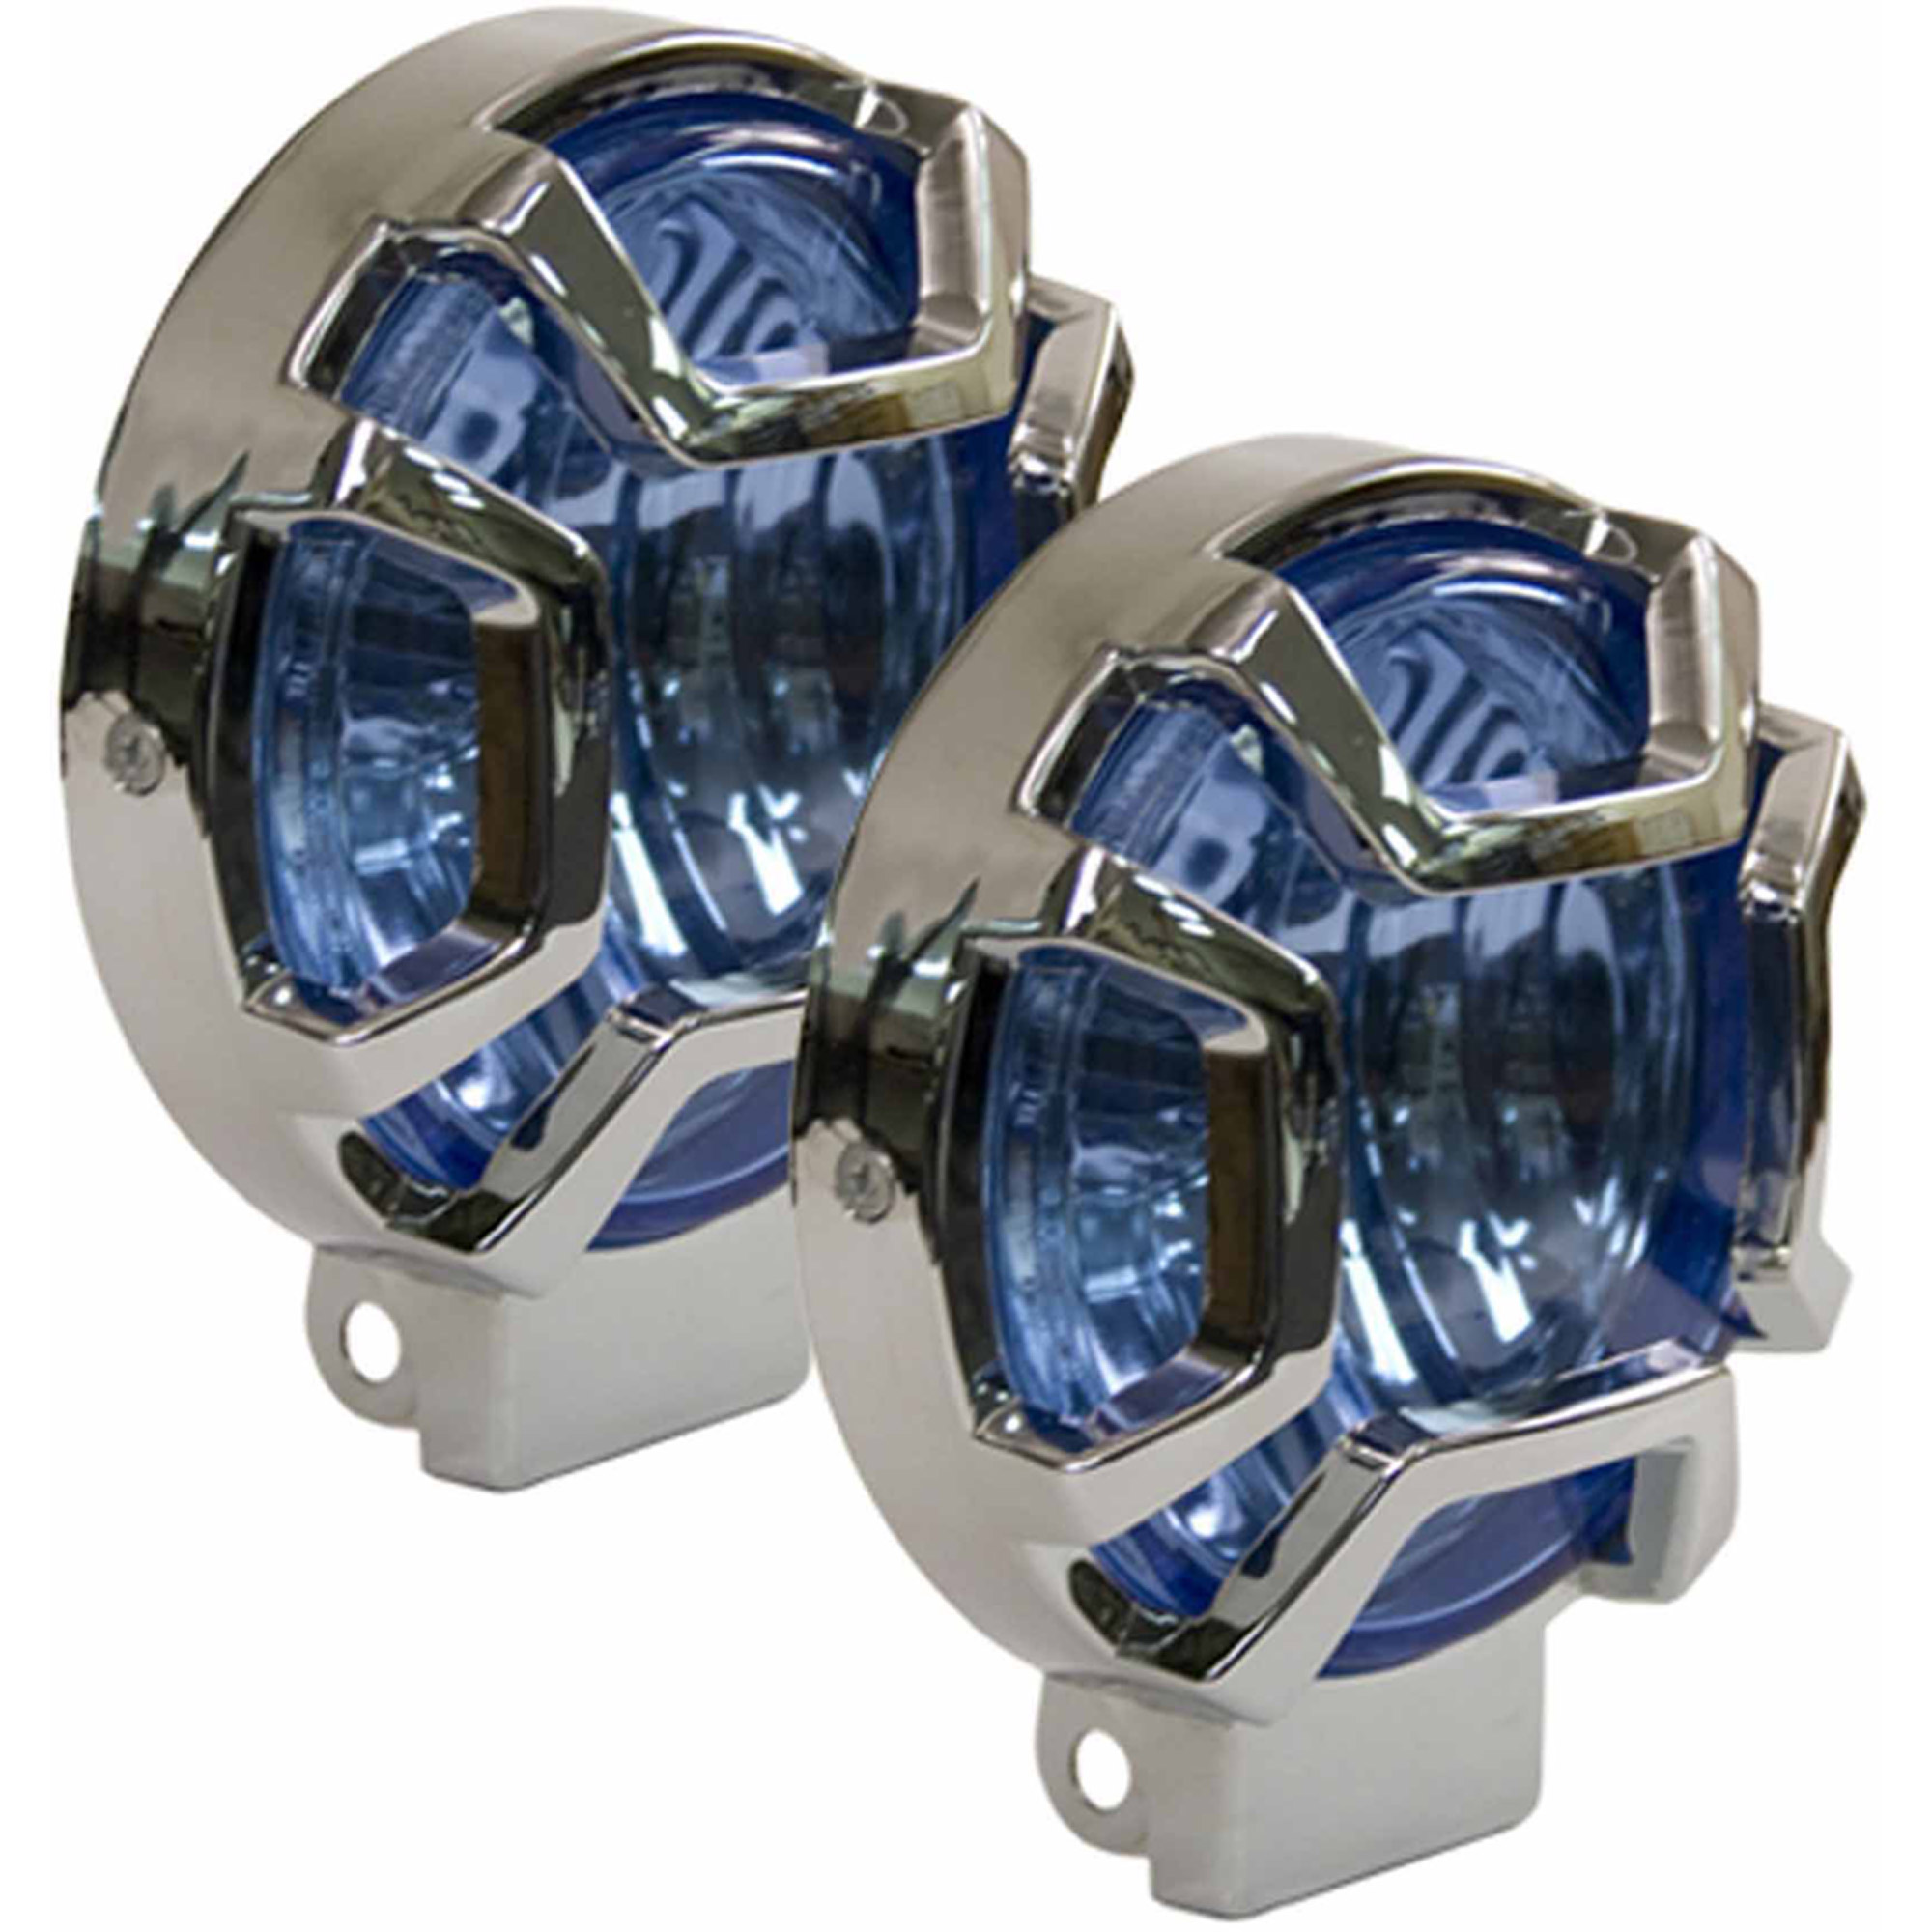 hight resolution of blazer ew3619 baja 5 high performance halogen truck light pack of 2 lights walmart com